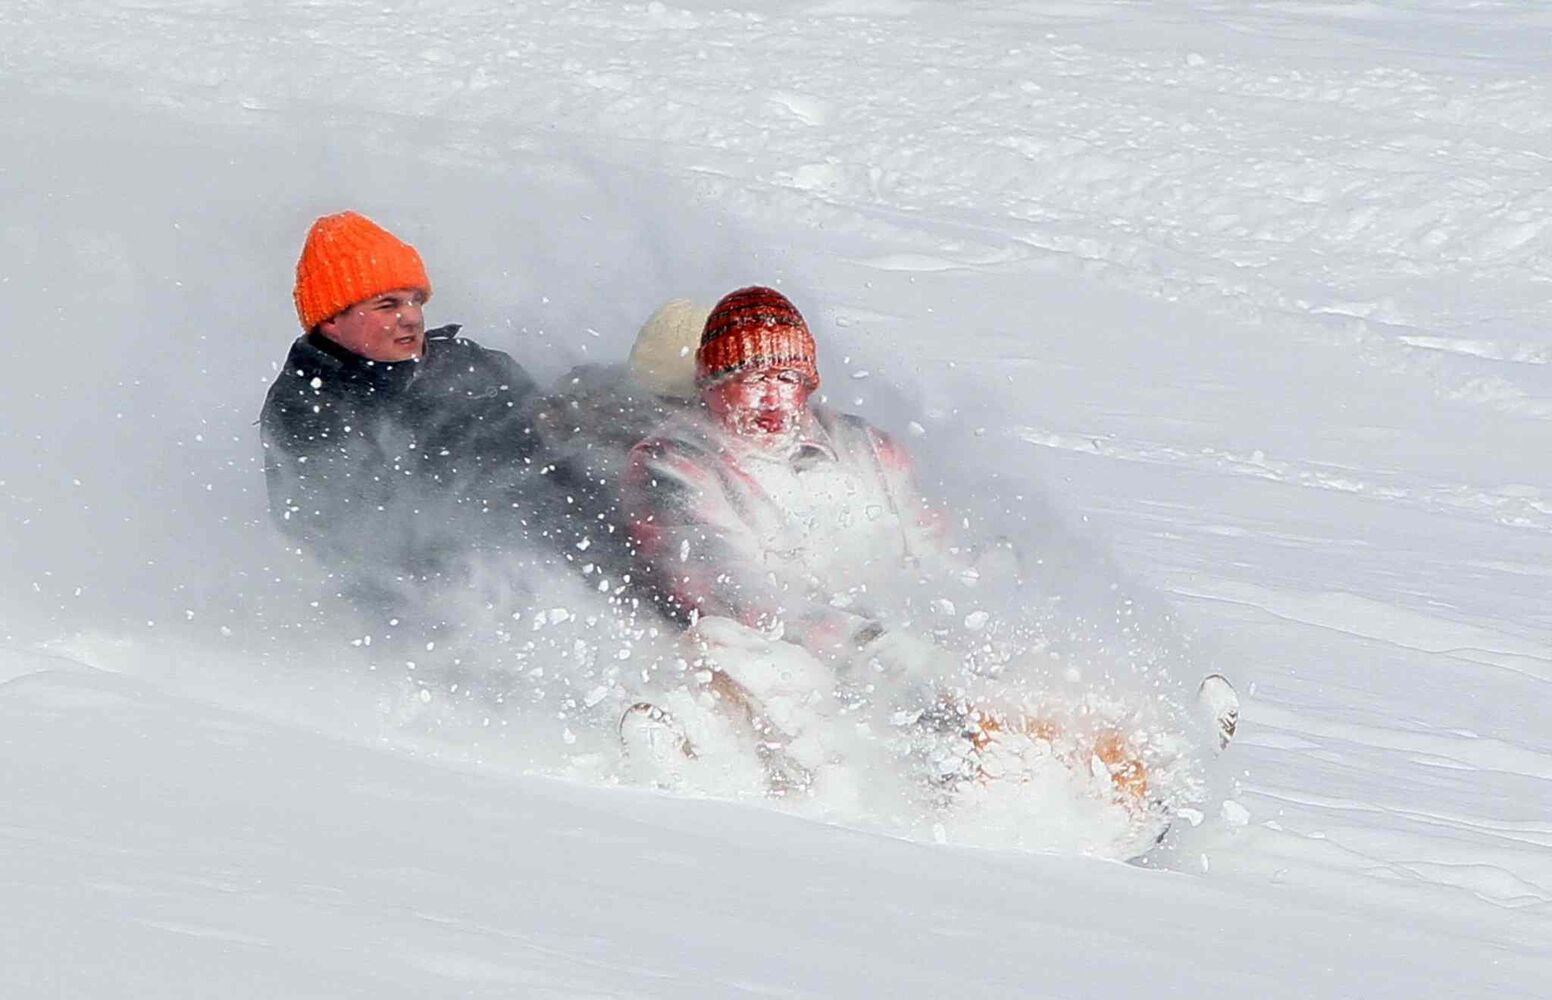 Mark Hachett, right, takes the brunt of the snow as he and his children Kaitlyn, center, and Jacob, left, ride a toboggan at Goodyear Metro Park in Akron, Ohio, on Friday, January 3, 2014.  (Mike Cardew / Tribune Media MCT)